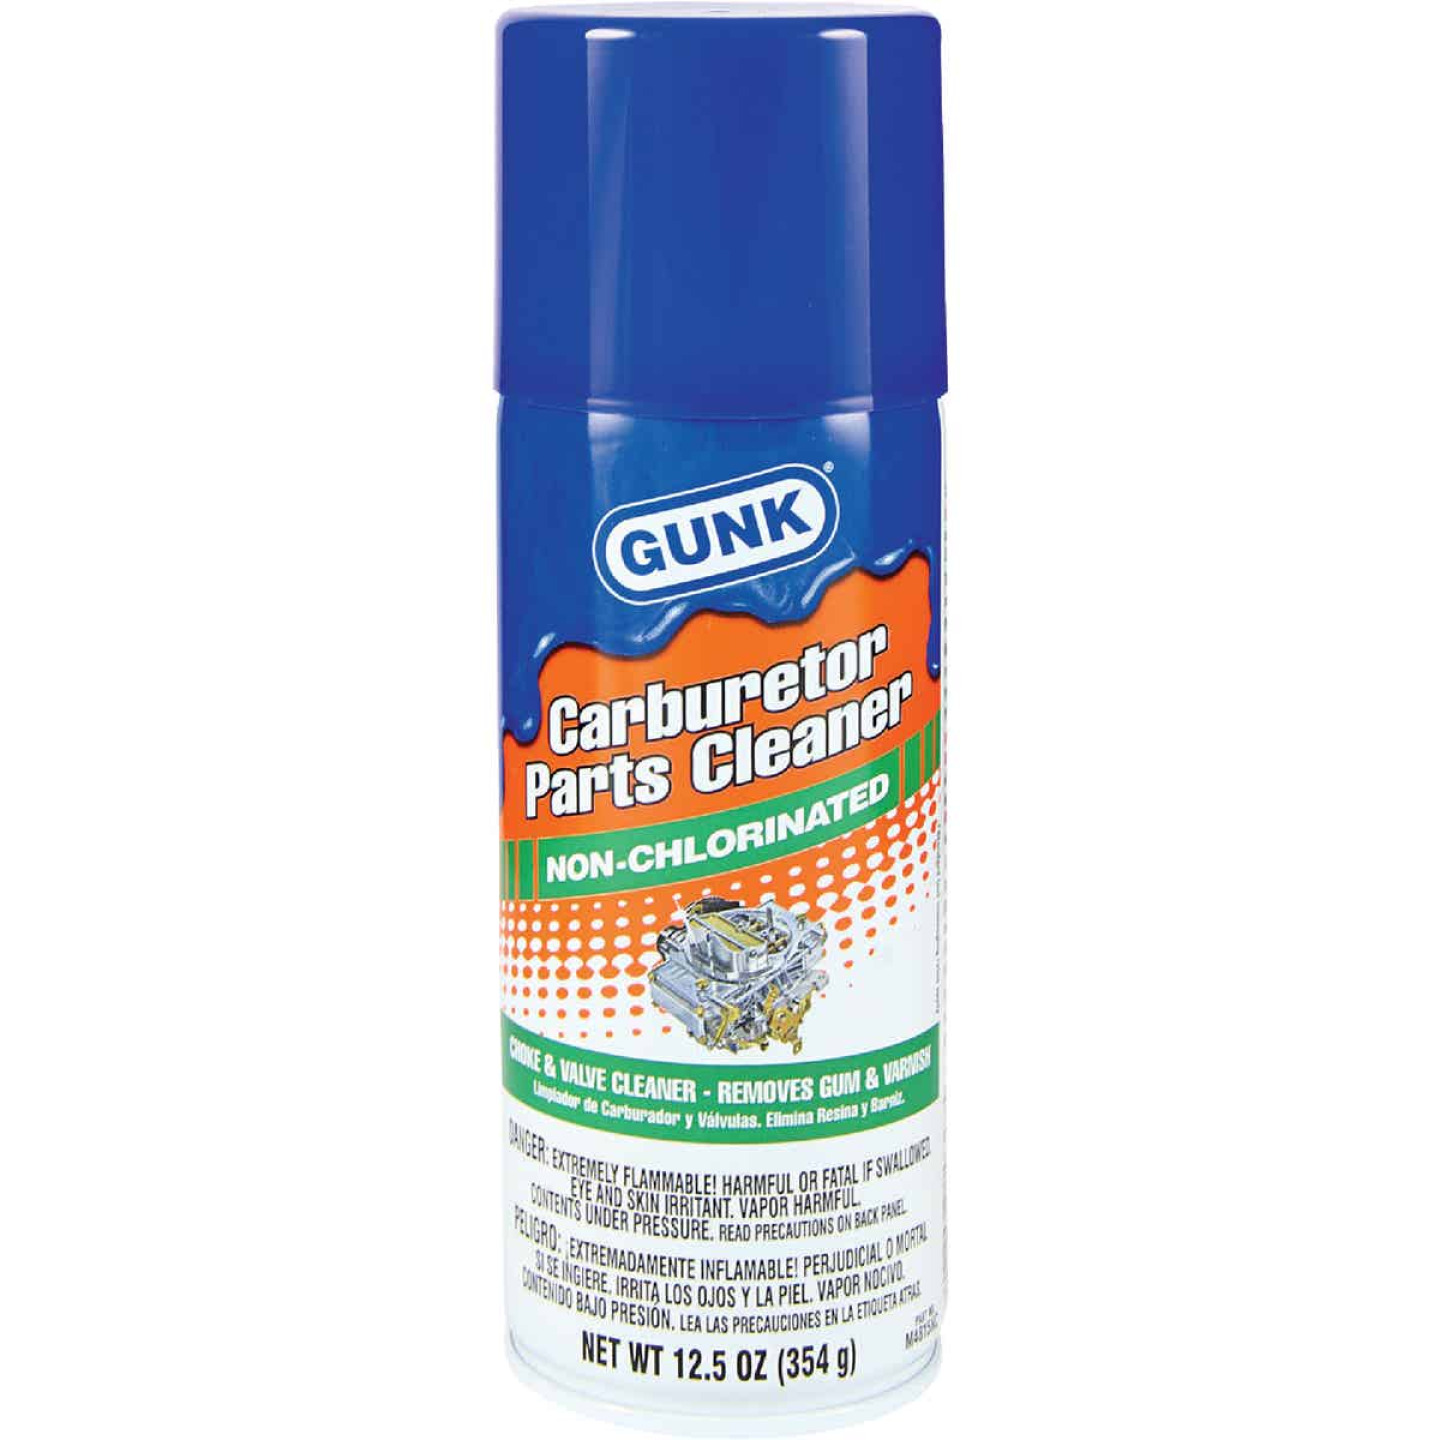 Gunk 12.5 Oz Aerosol Carburetor Cleaner Image 1